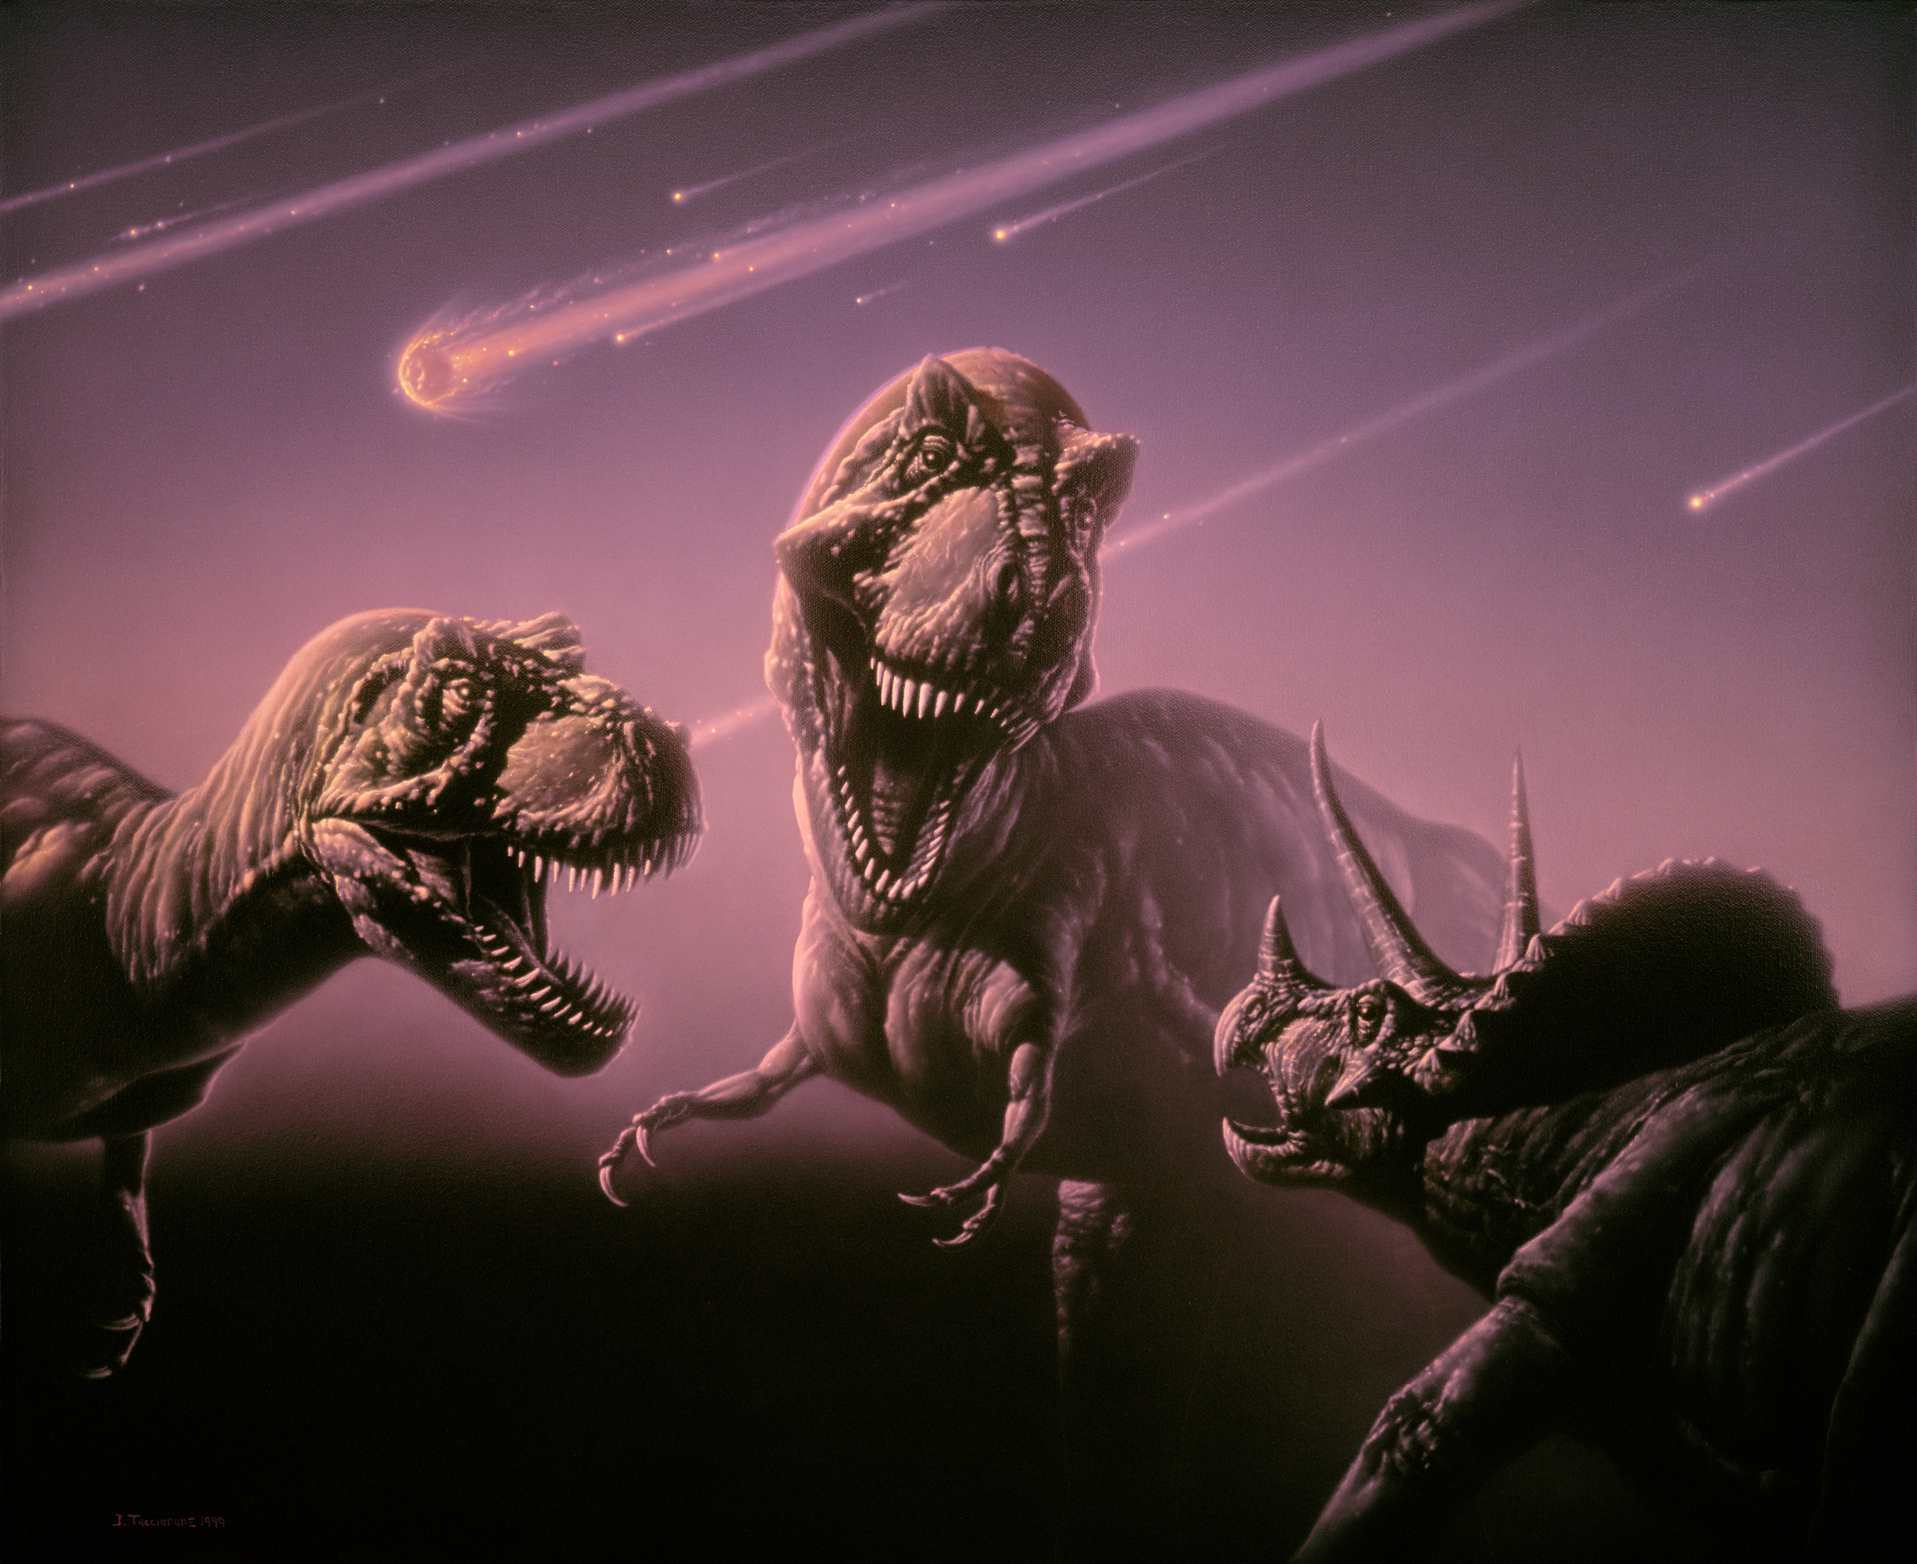 A Triceratops meets up with two hungry T. rex dinosaurs during a meteor shower